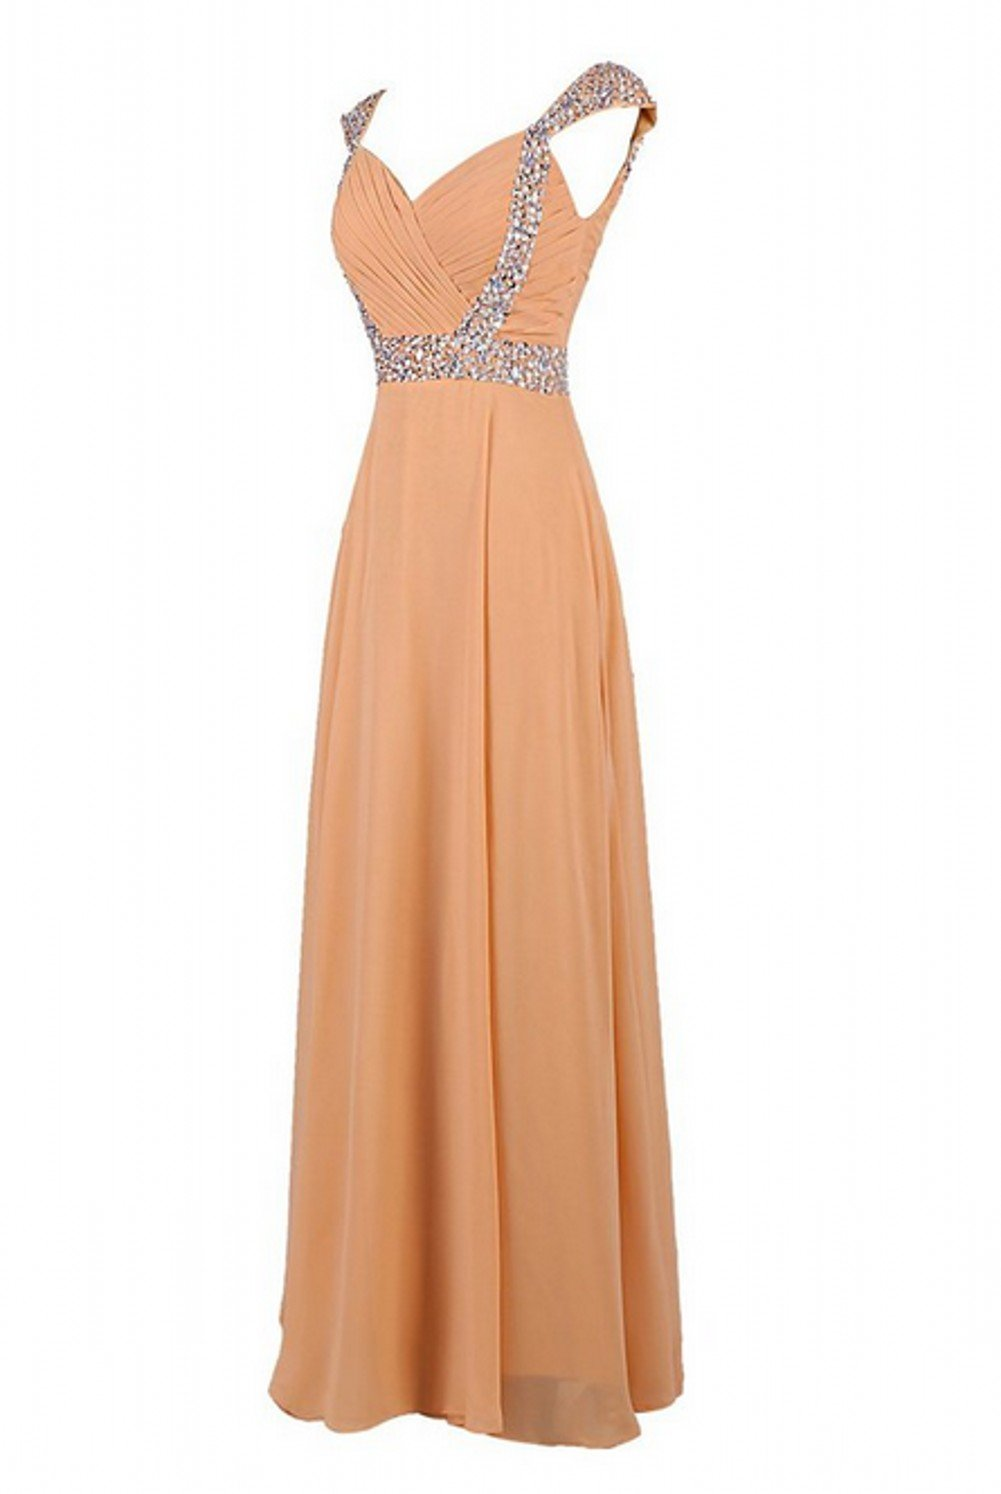 Love Dress Women Long Bridesmaid Dress Prom Party Gown Coral Us 26w by Love To Dress (Image #2)